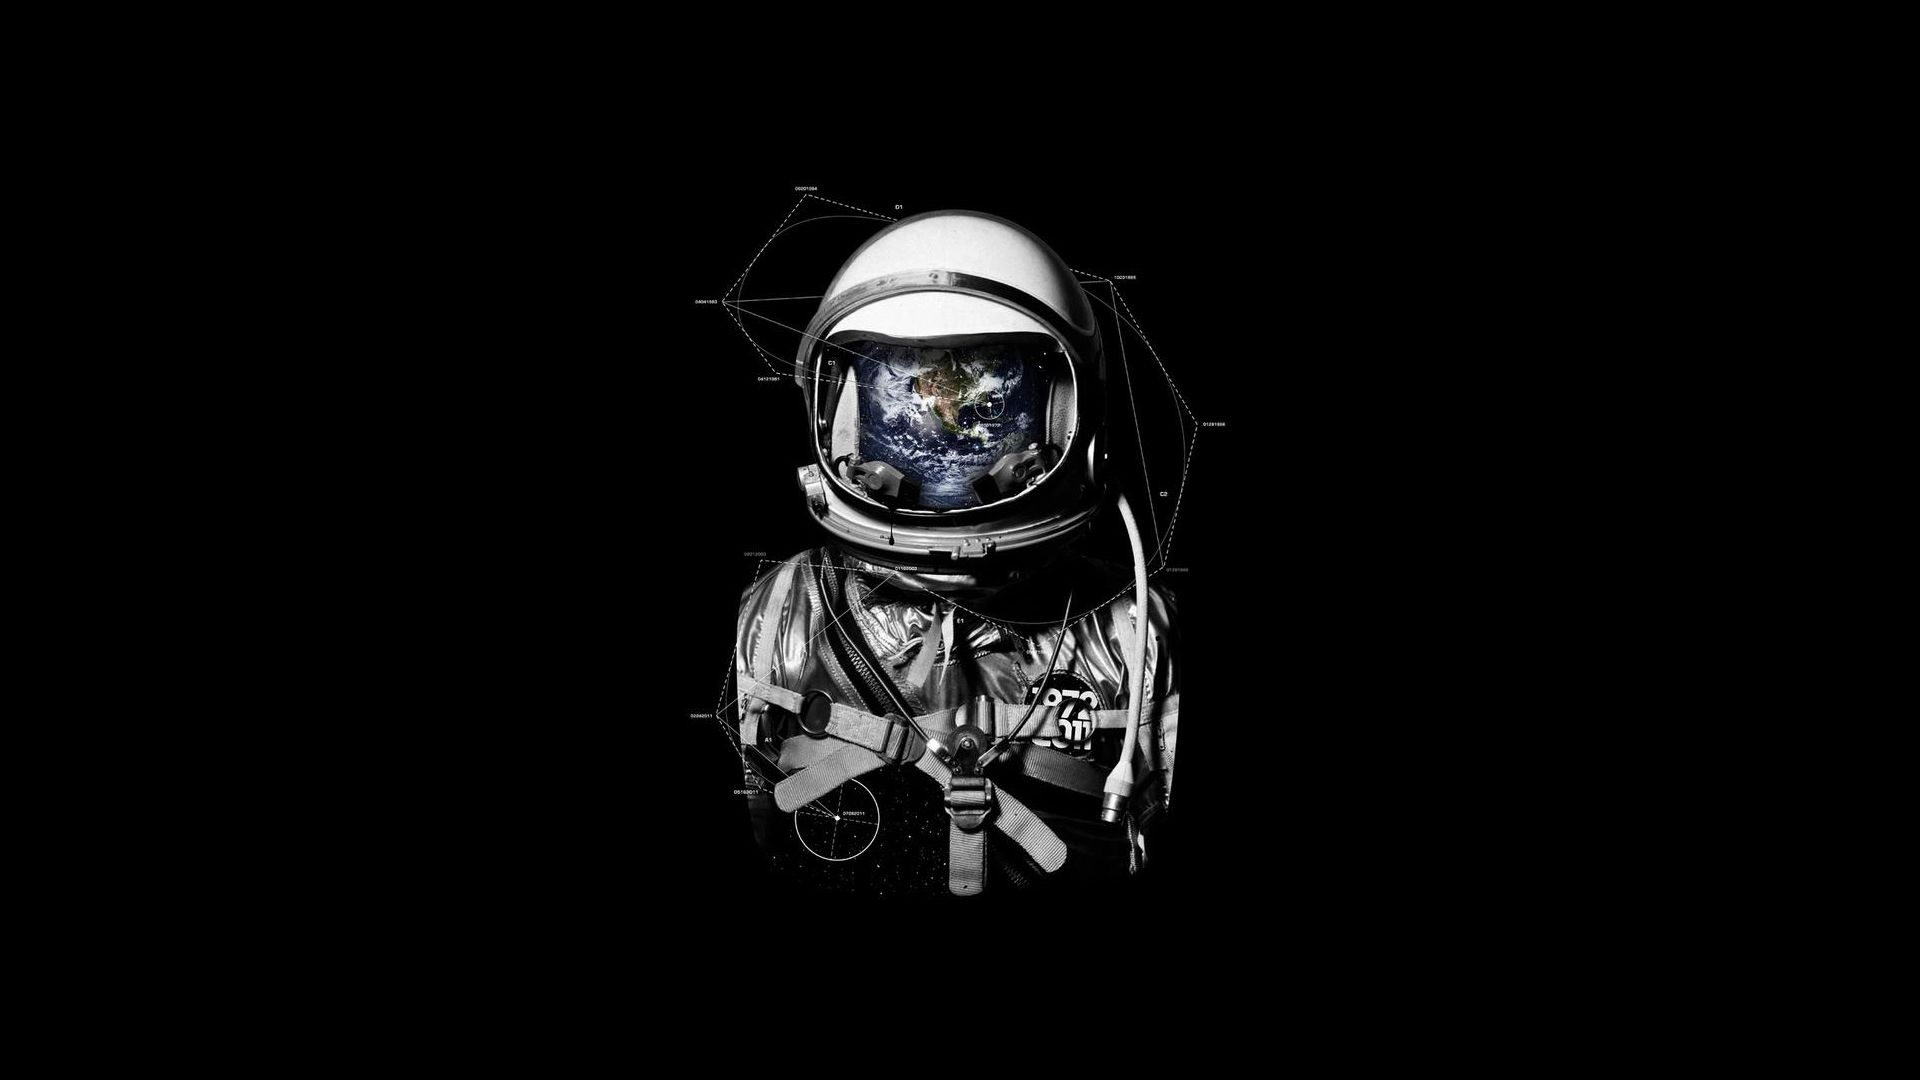 Sci Fi Astronaut Wallpaper Background 1920 X 1080